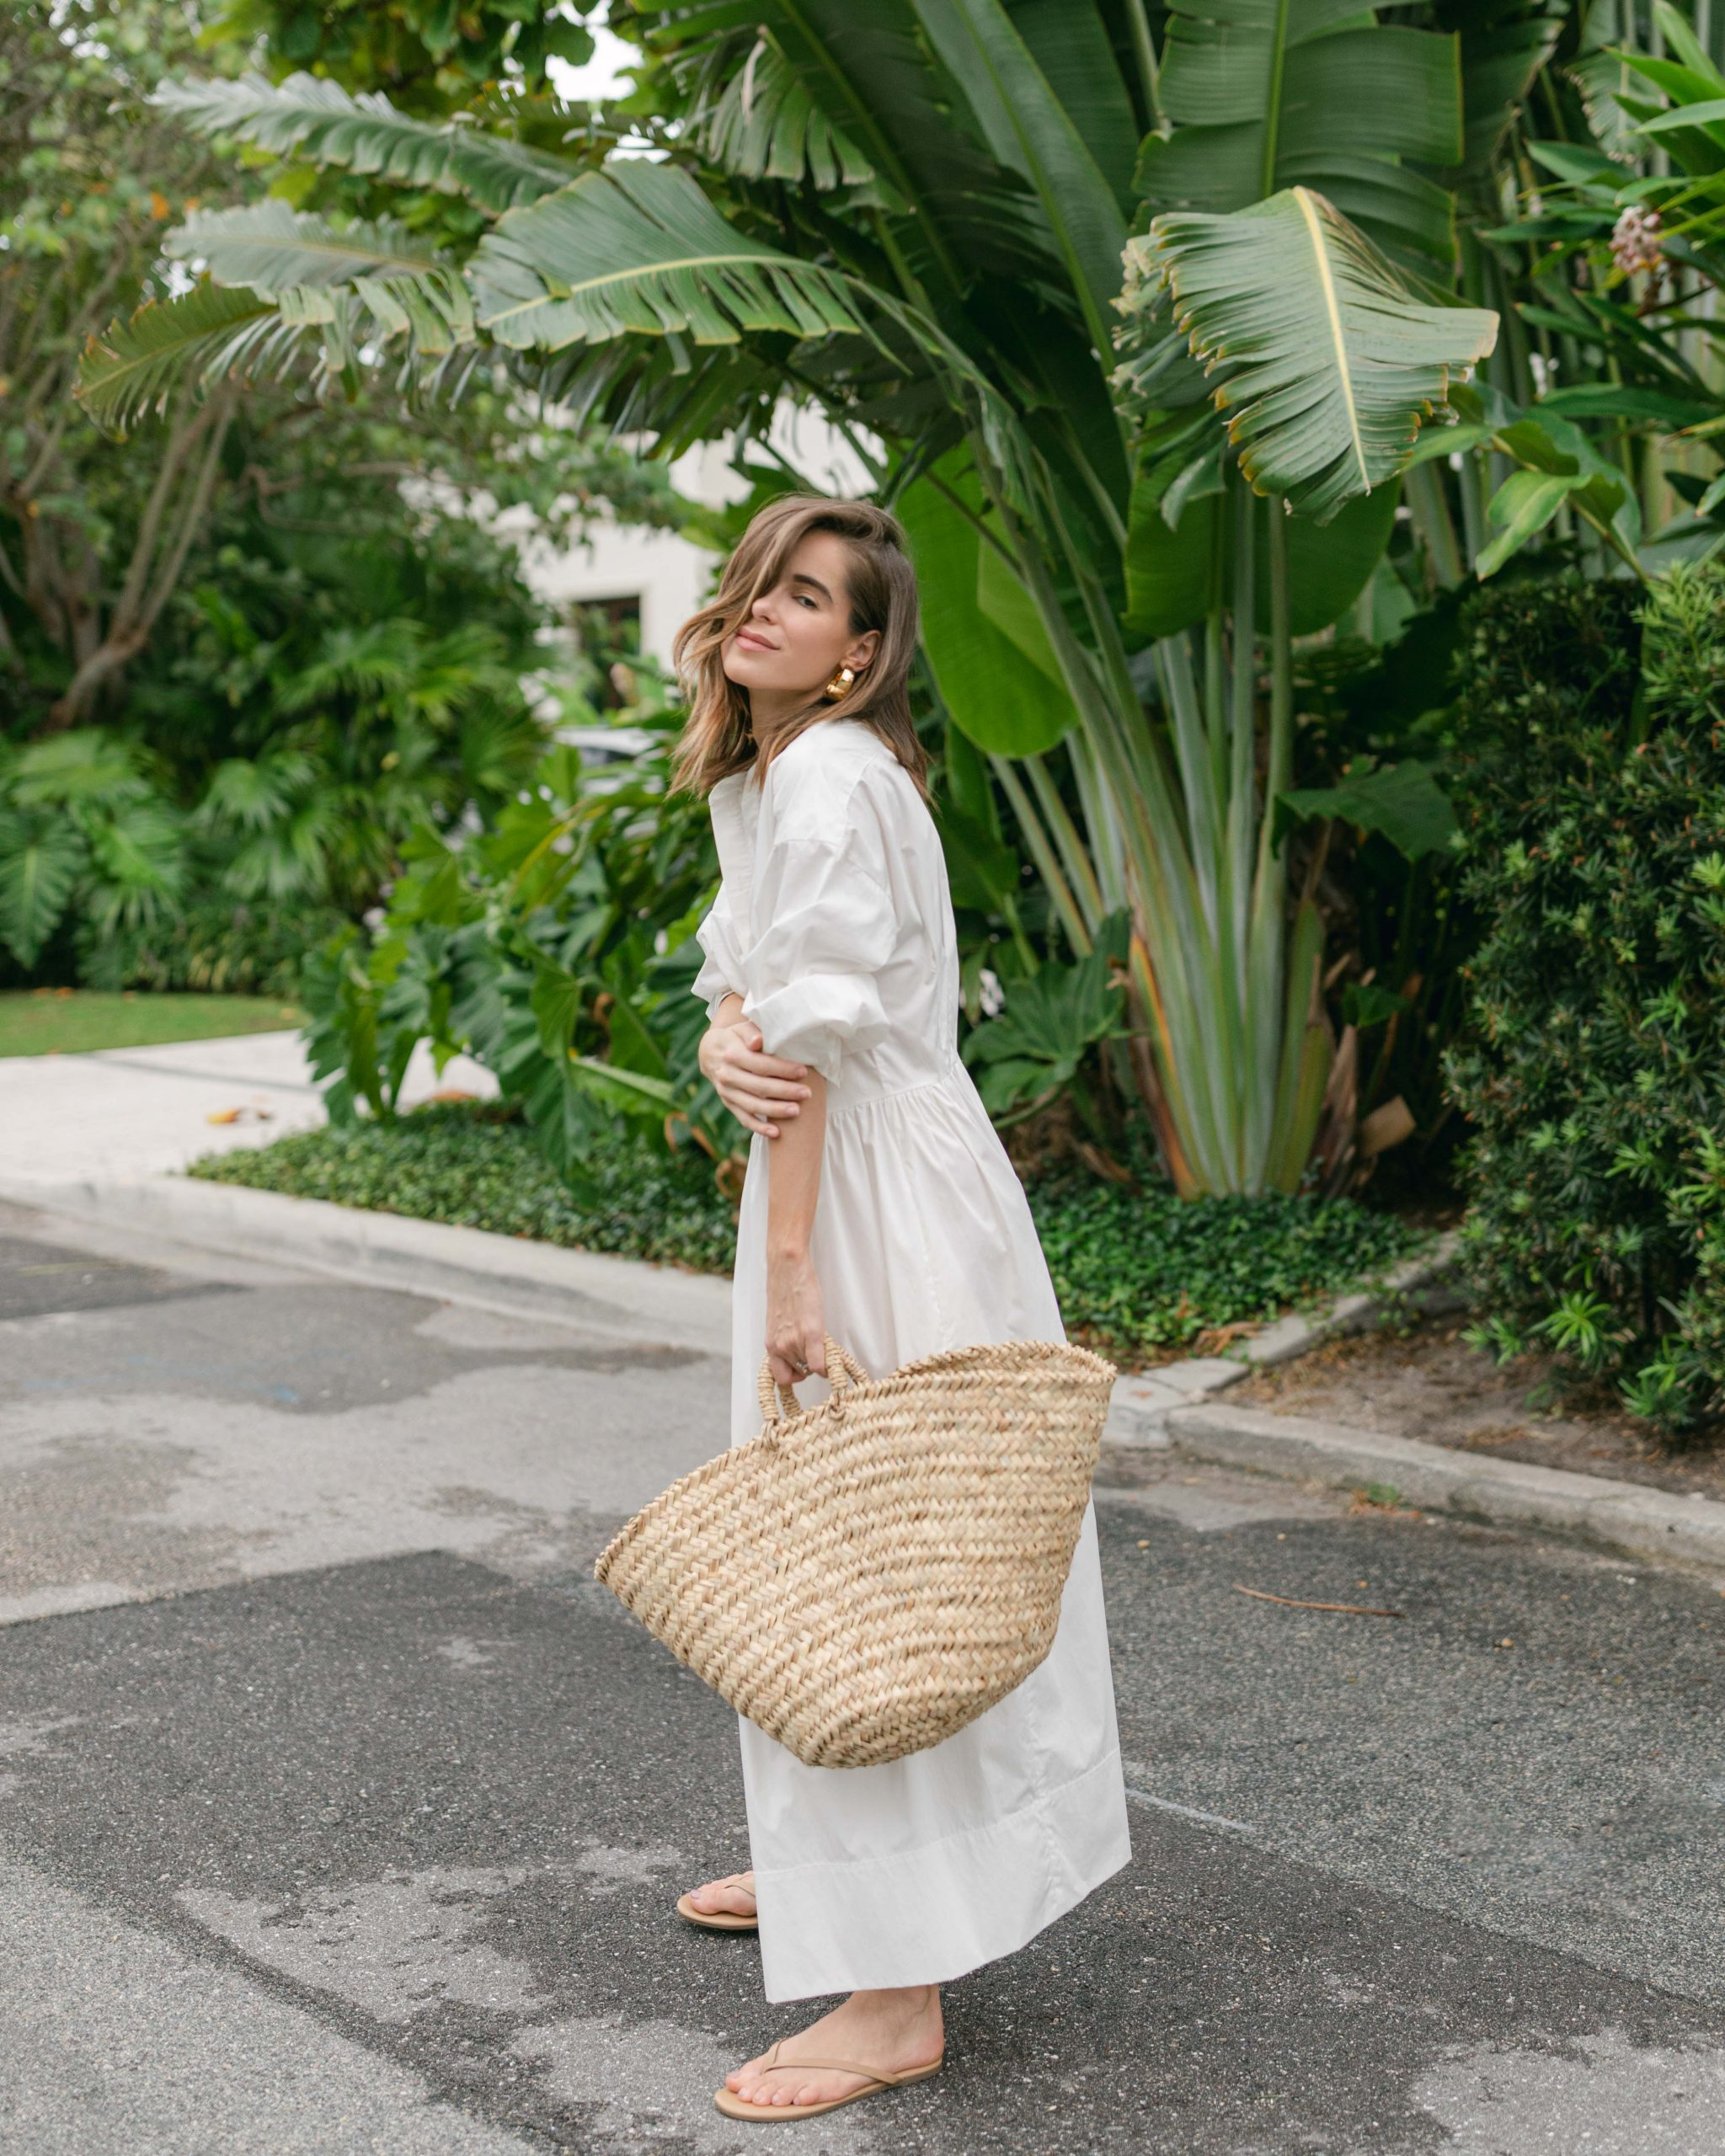 Fashion Blogger Stephanie Hill featuring Easing Into Summer with Harvey Nichols on The Style Bungalow